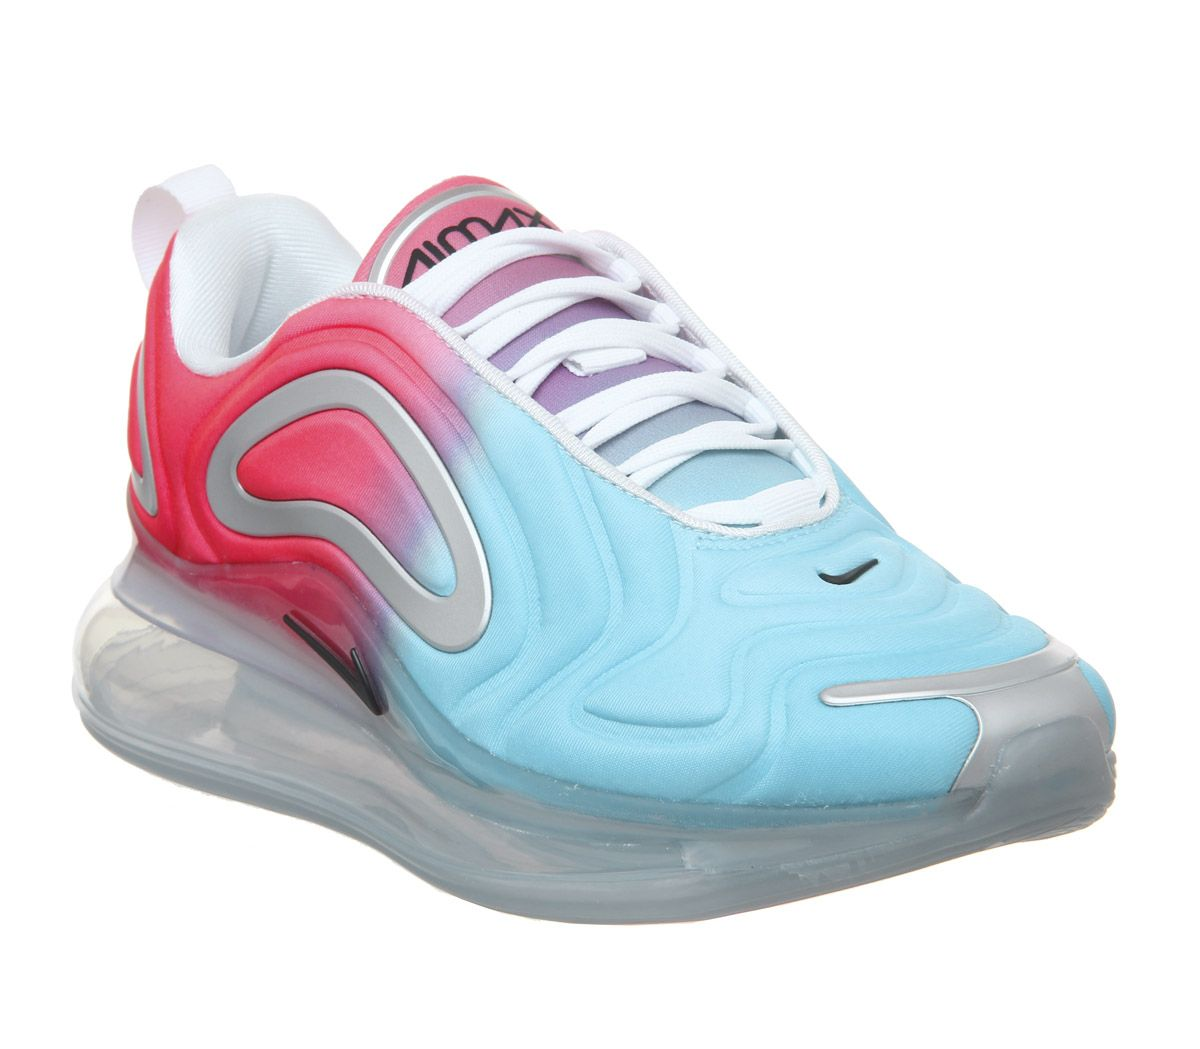 the best attitude 651c8 c9f2d Nike Air Max 720 Trainers Lava Glow Black Blue Fury F - Hers trainers